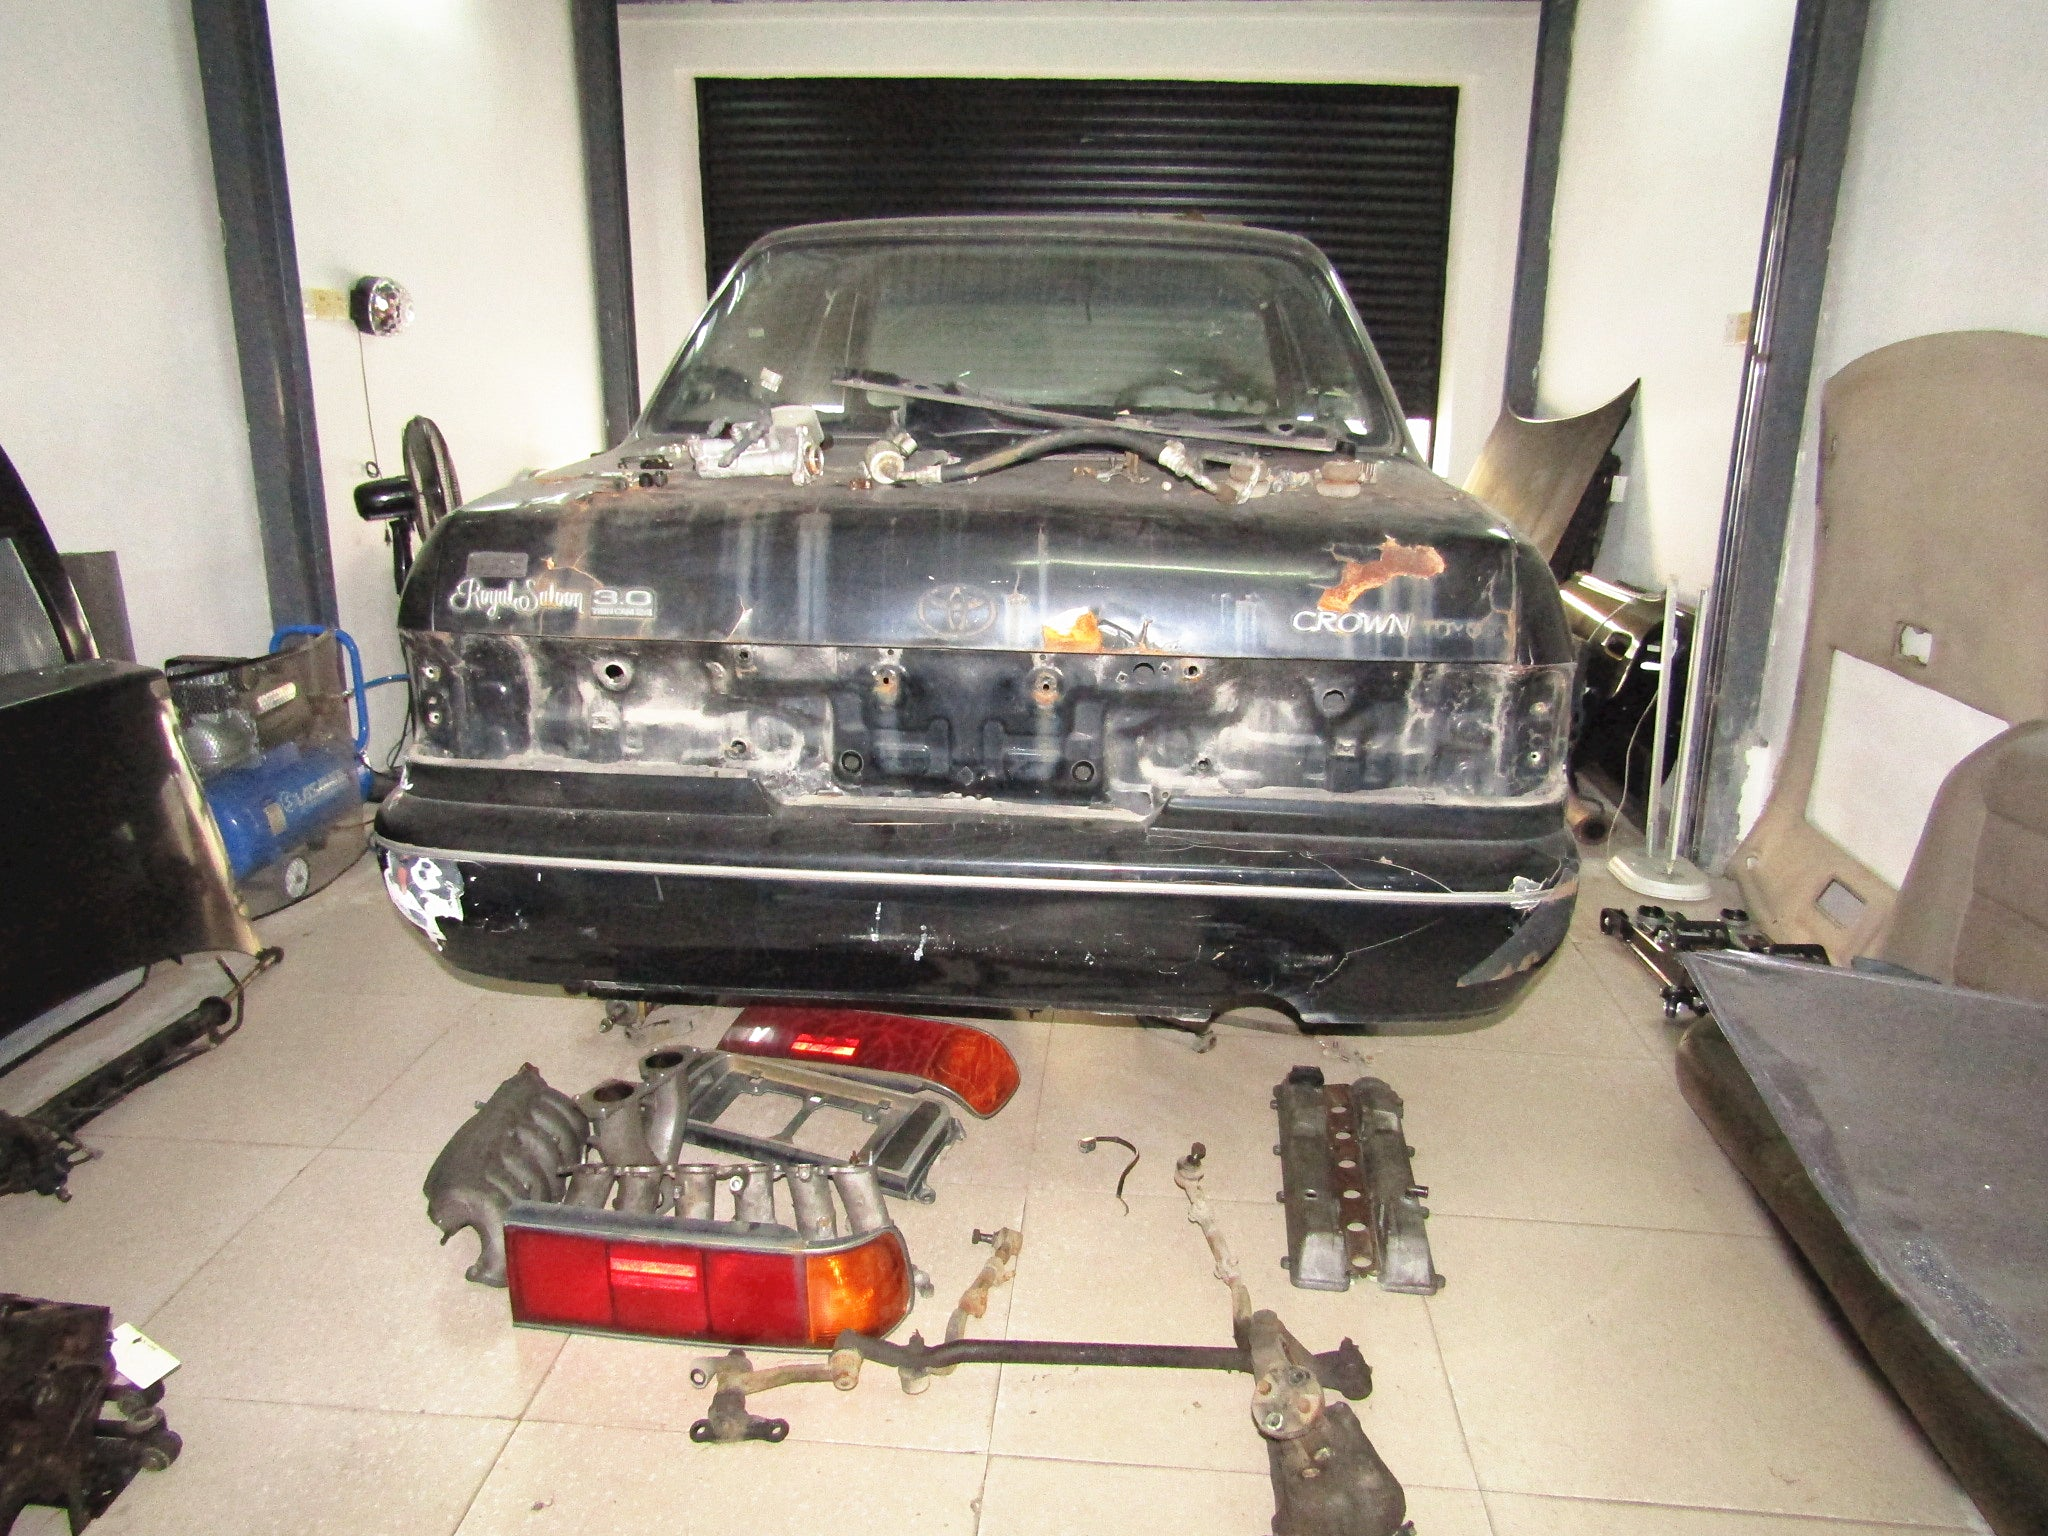 1991 Toyota Crown Royal Saloon Sedan 3.0L 2JZ-GE A/T - Project Picture Gallery